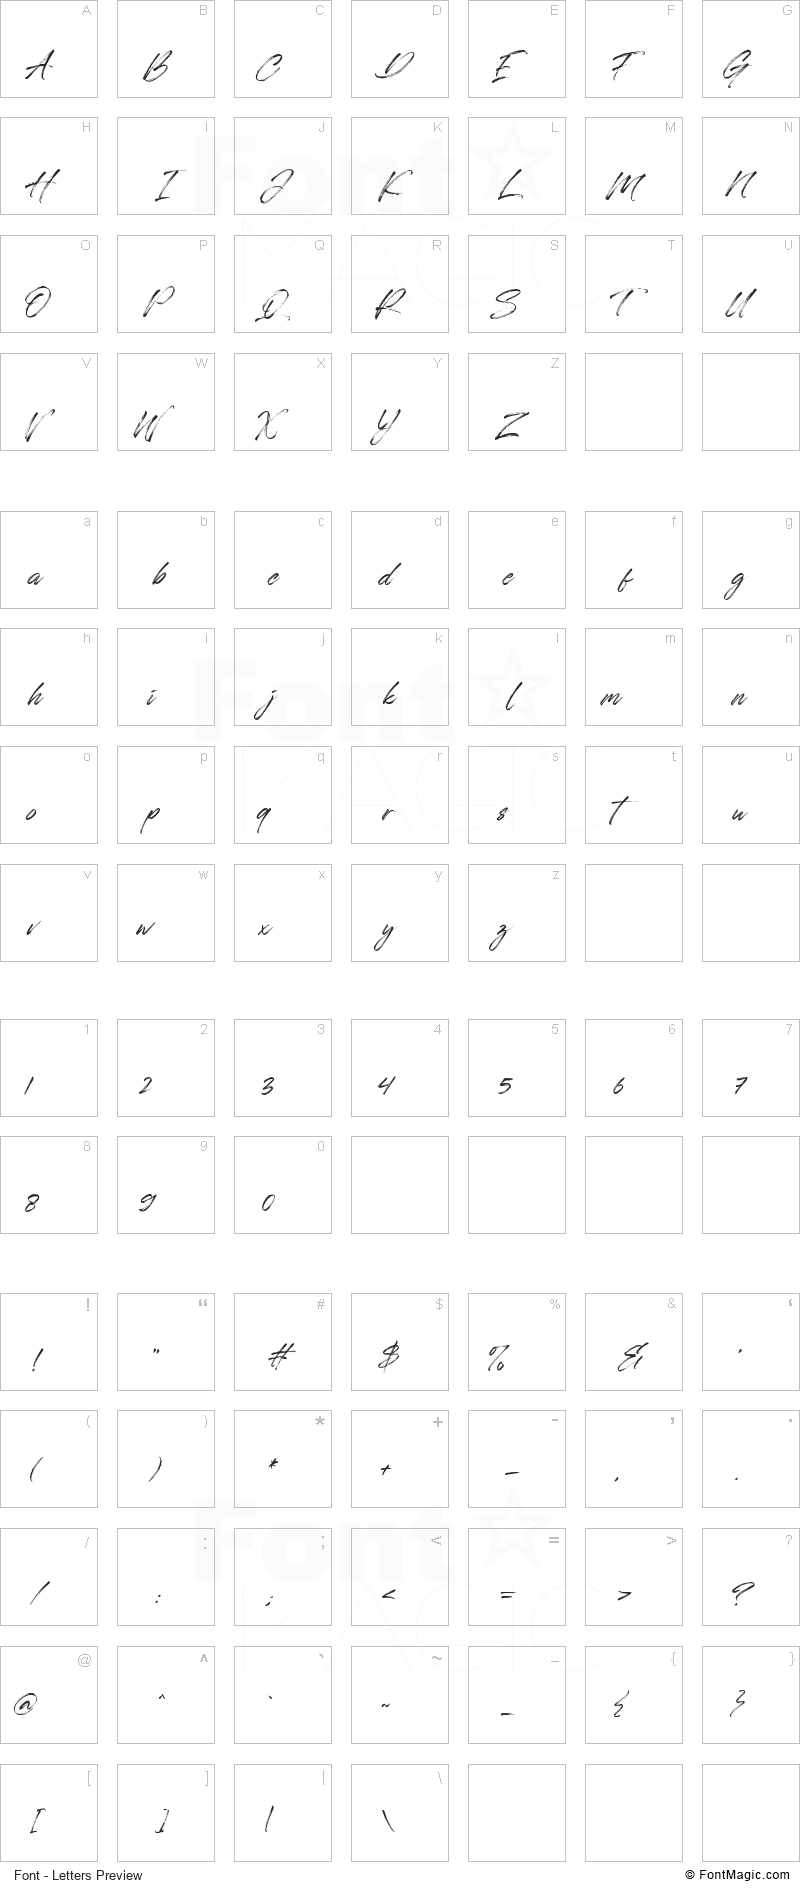 Automobile Contest Font - All Latters Preview Chart